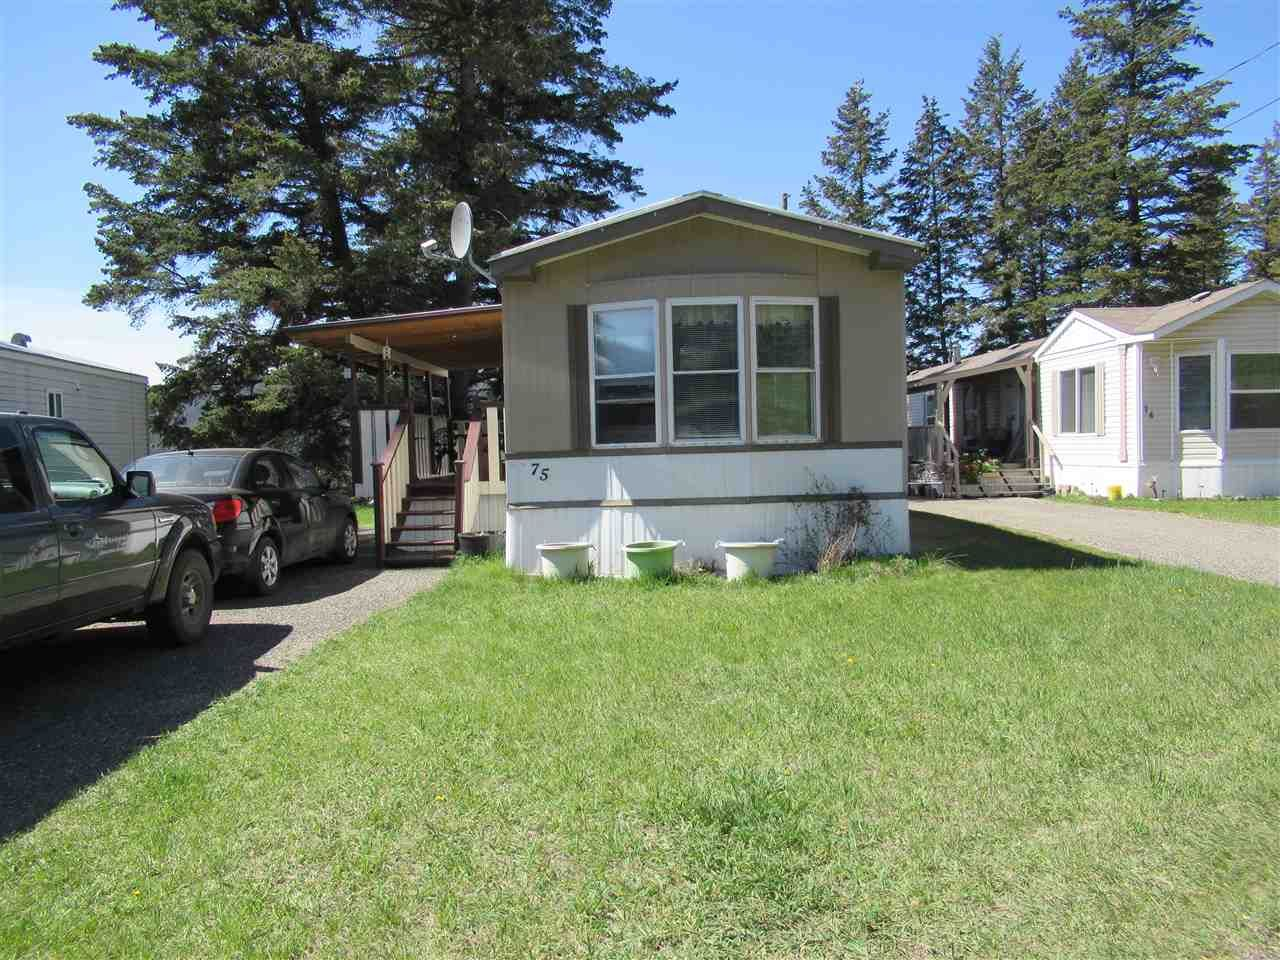 Main Photo: 75 770 11TH Avenue in Williams Lake: Williams Lake - City Manufactured Home for sale (Williams Lake (Zone 27))  : MLS®# R2368538